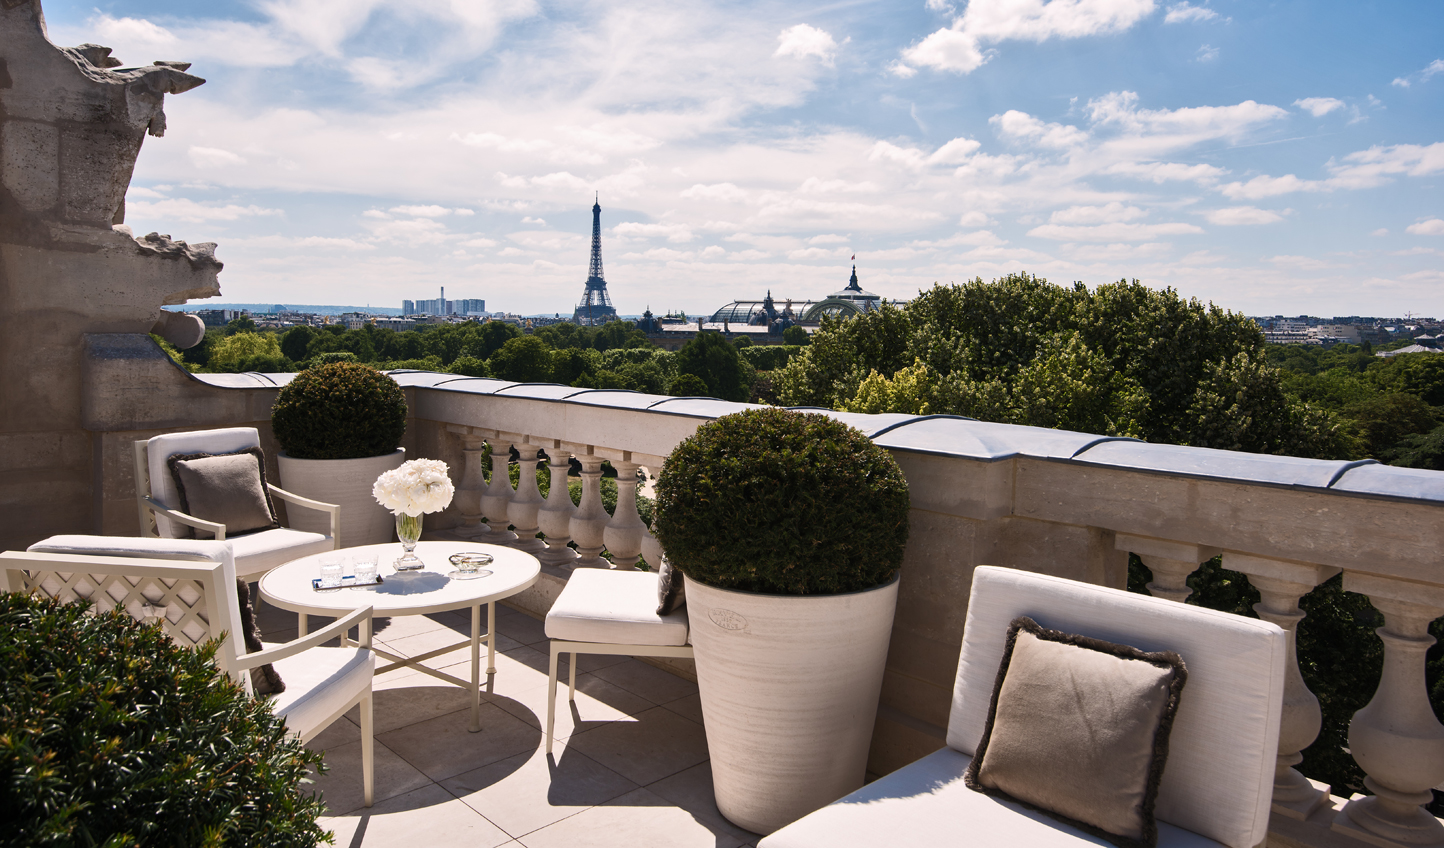 Settle into Suite Bernstein and enjoy postcard-perfect views of the city